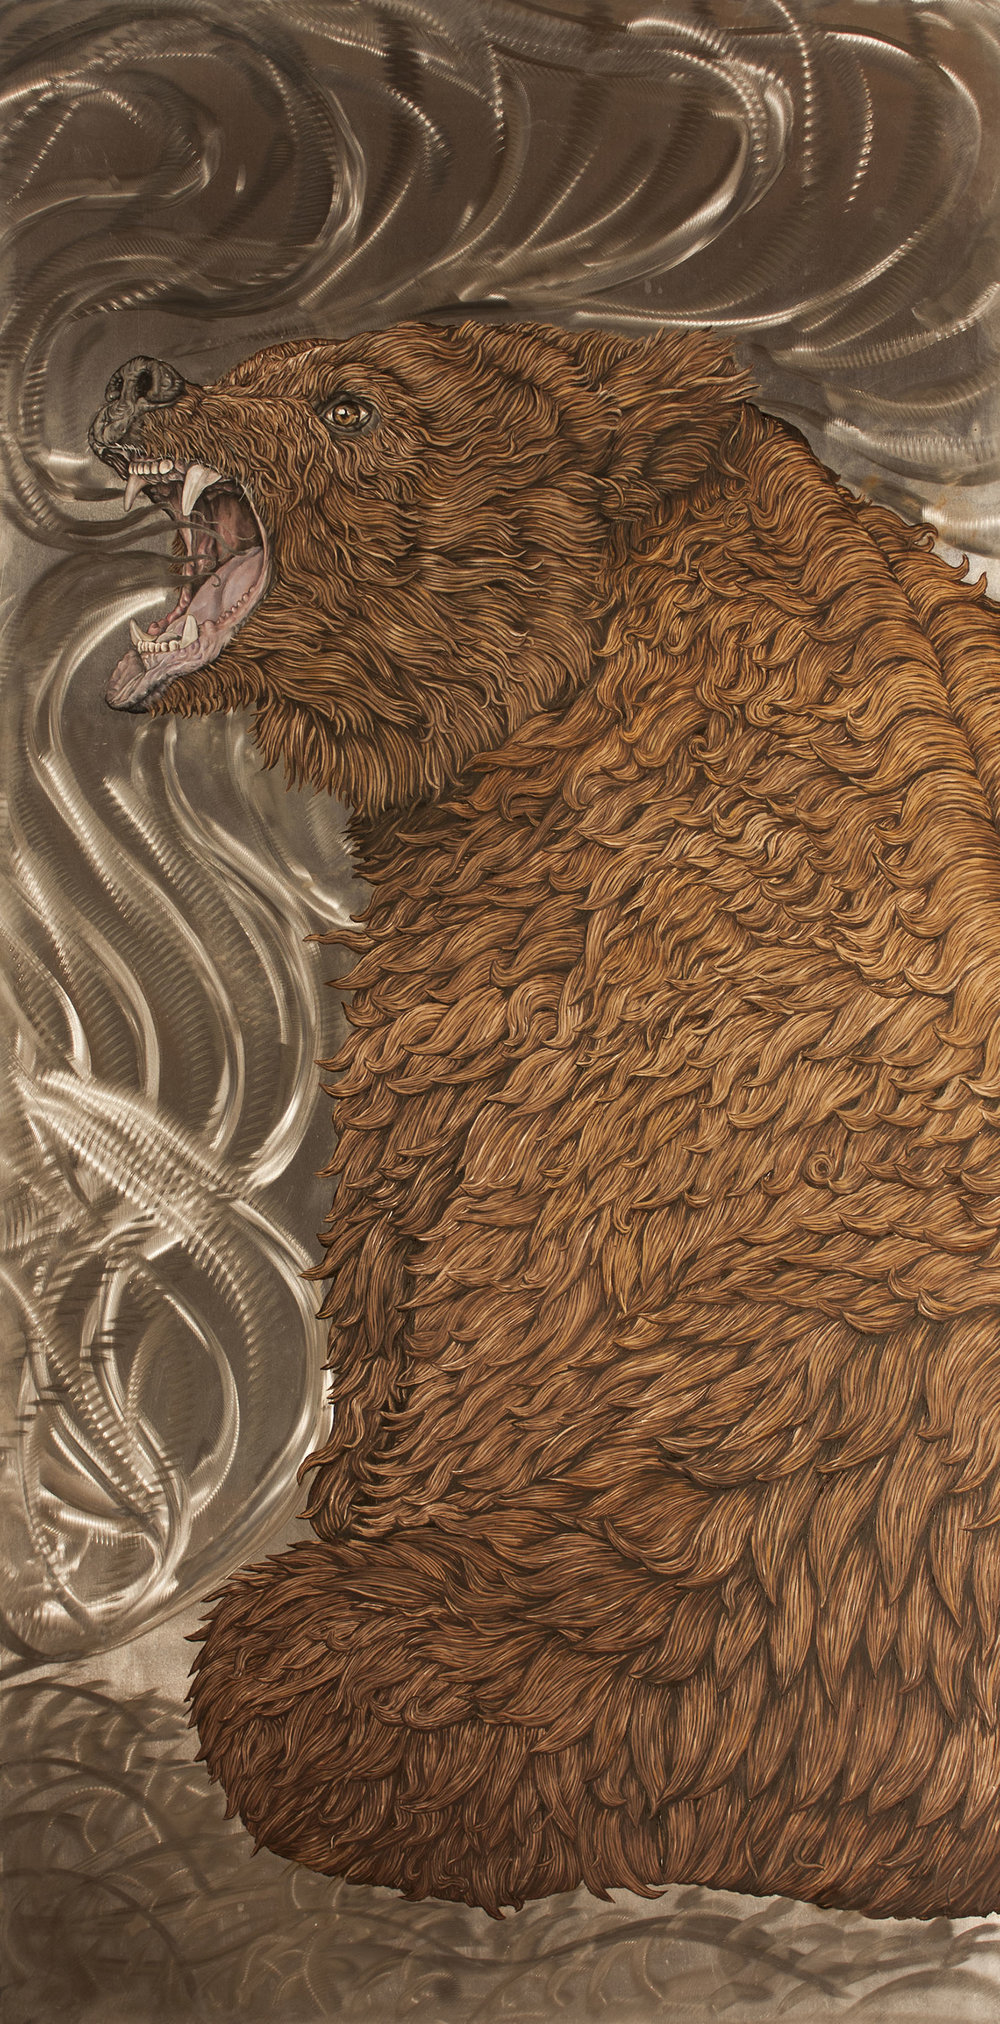 """Bear II"" by James Russell May, Oil on aluminum, 48x24in, $5500"